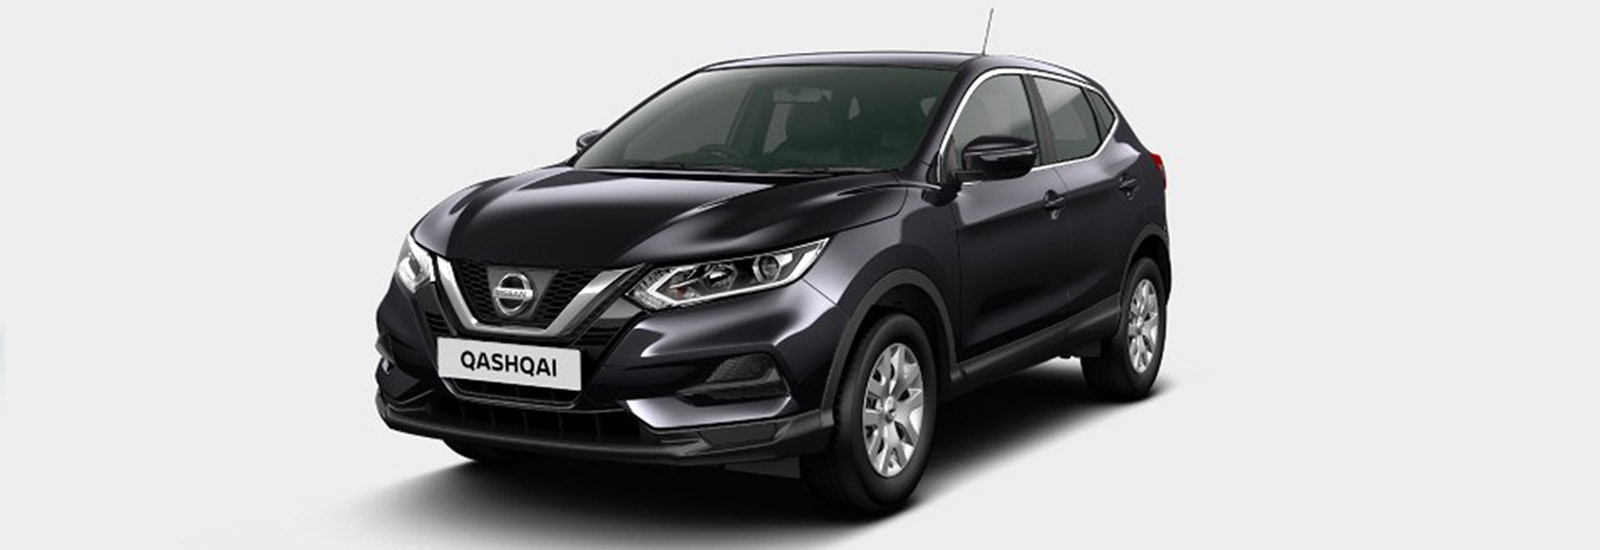 Nissan Qashqai colours guide and prices | carwow